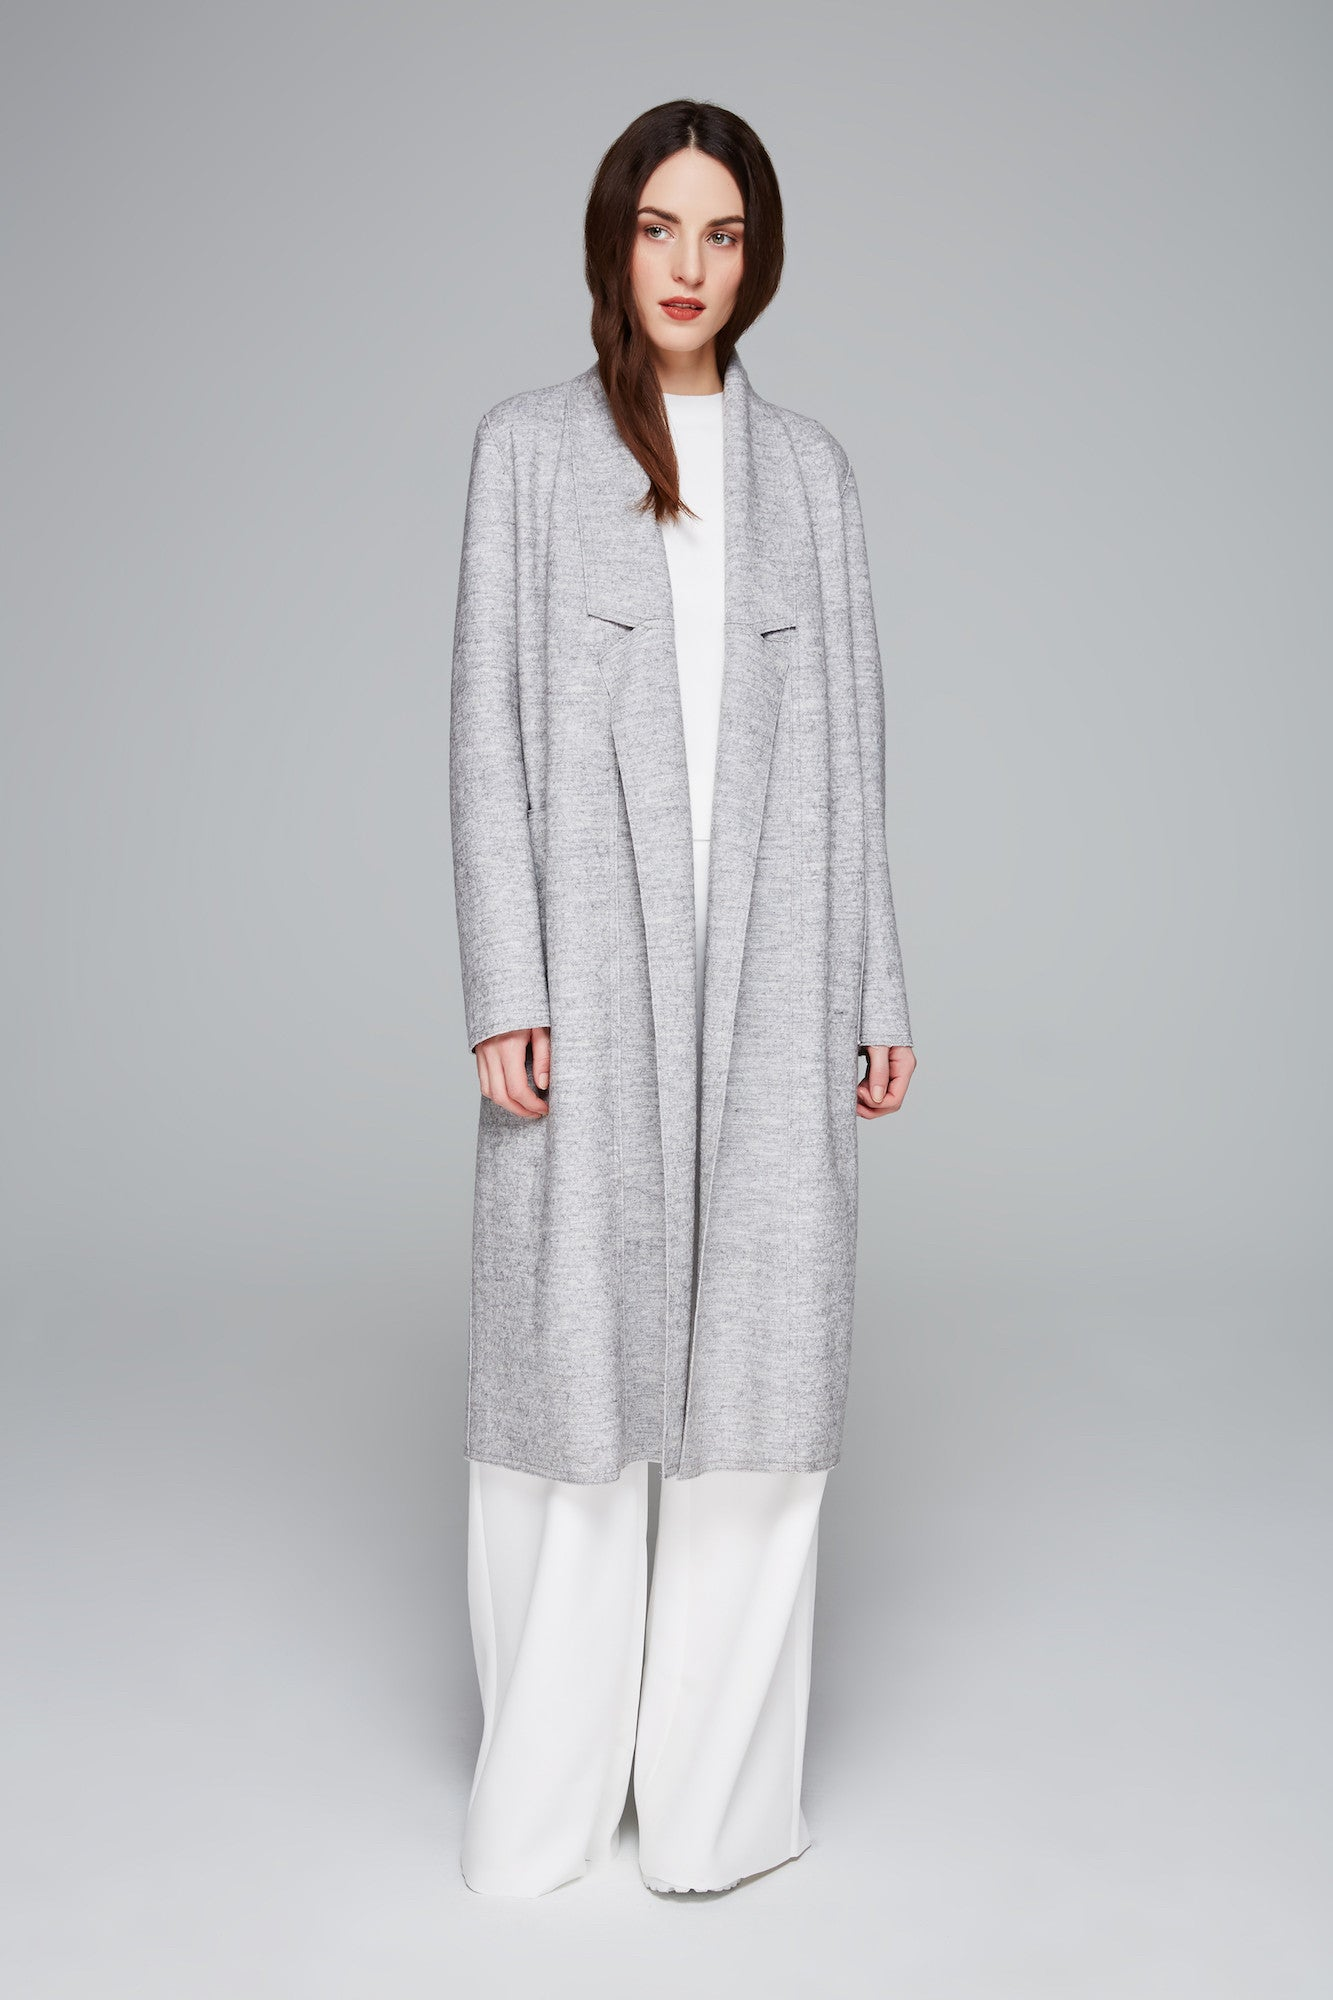 Bella Heather Double Knit Coat